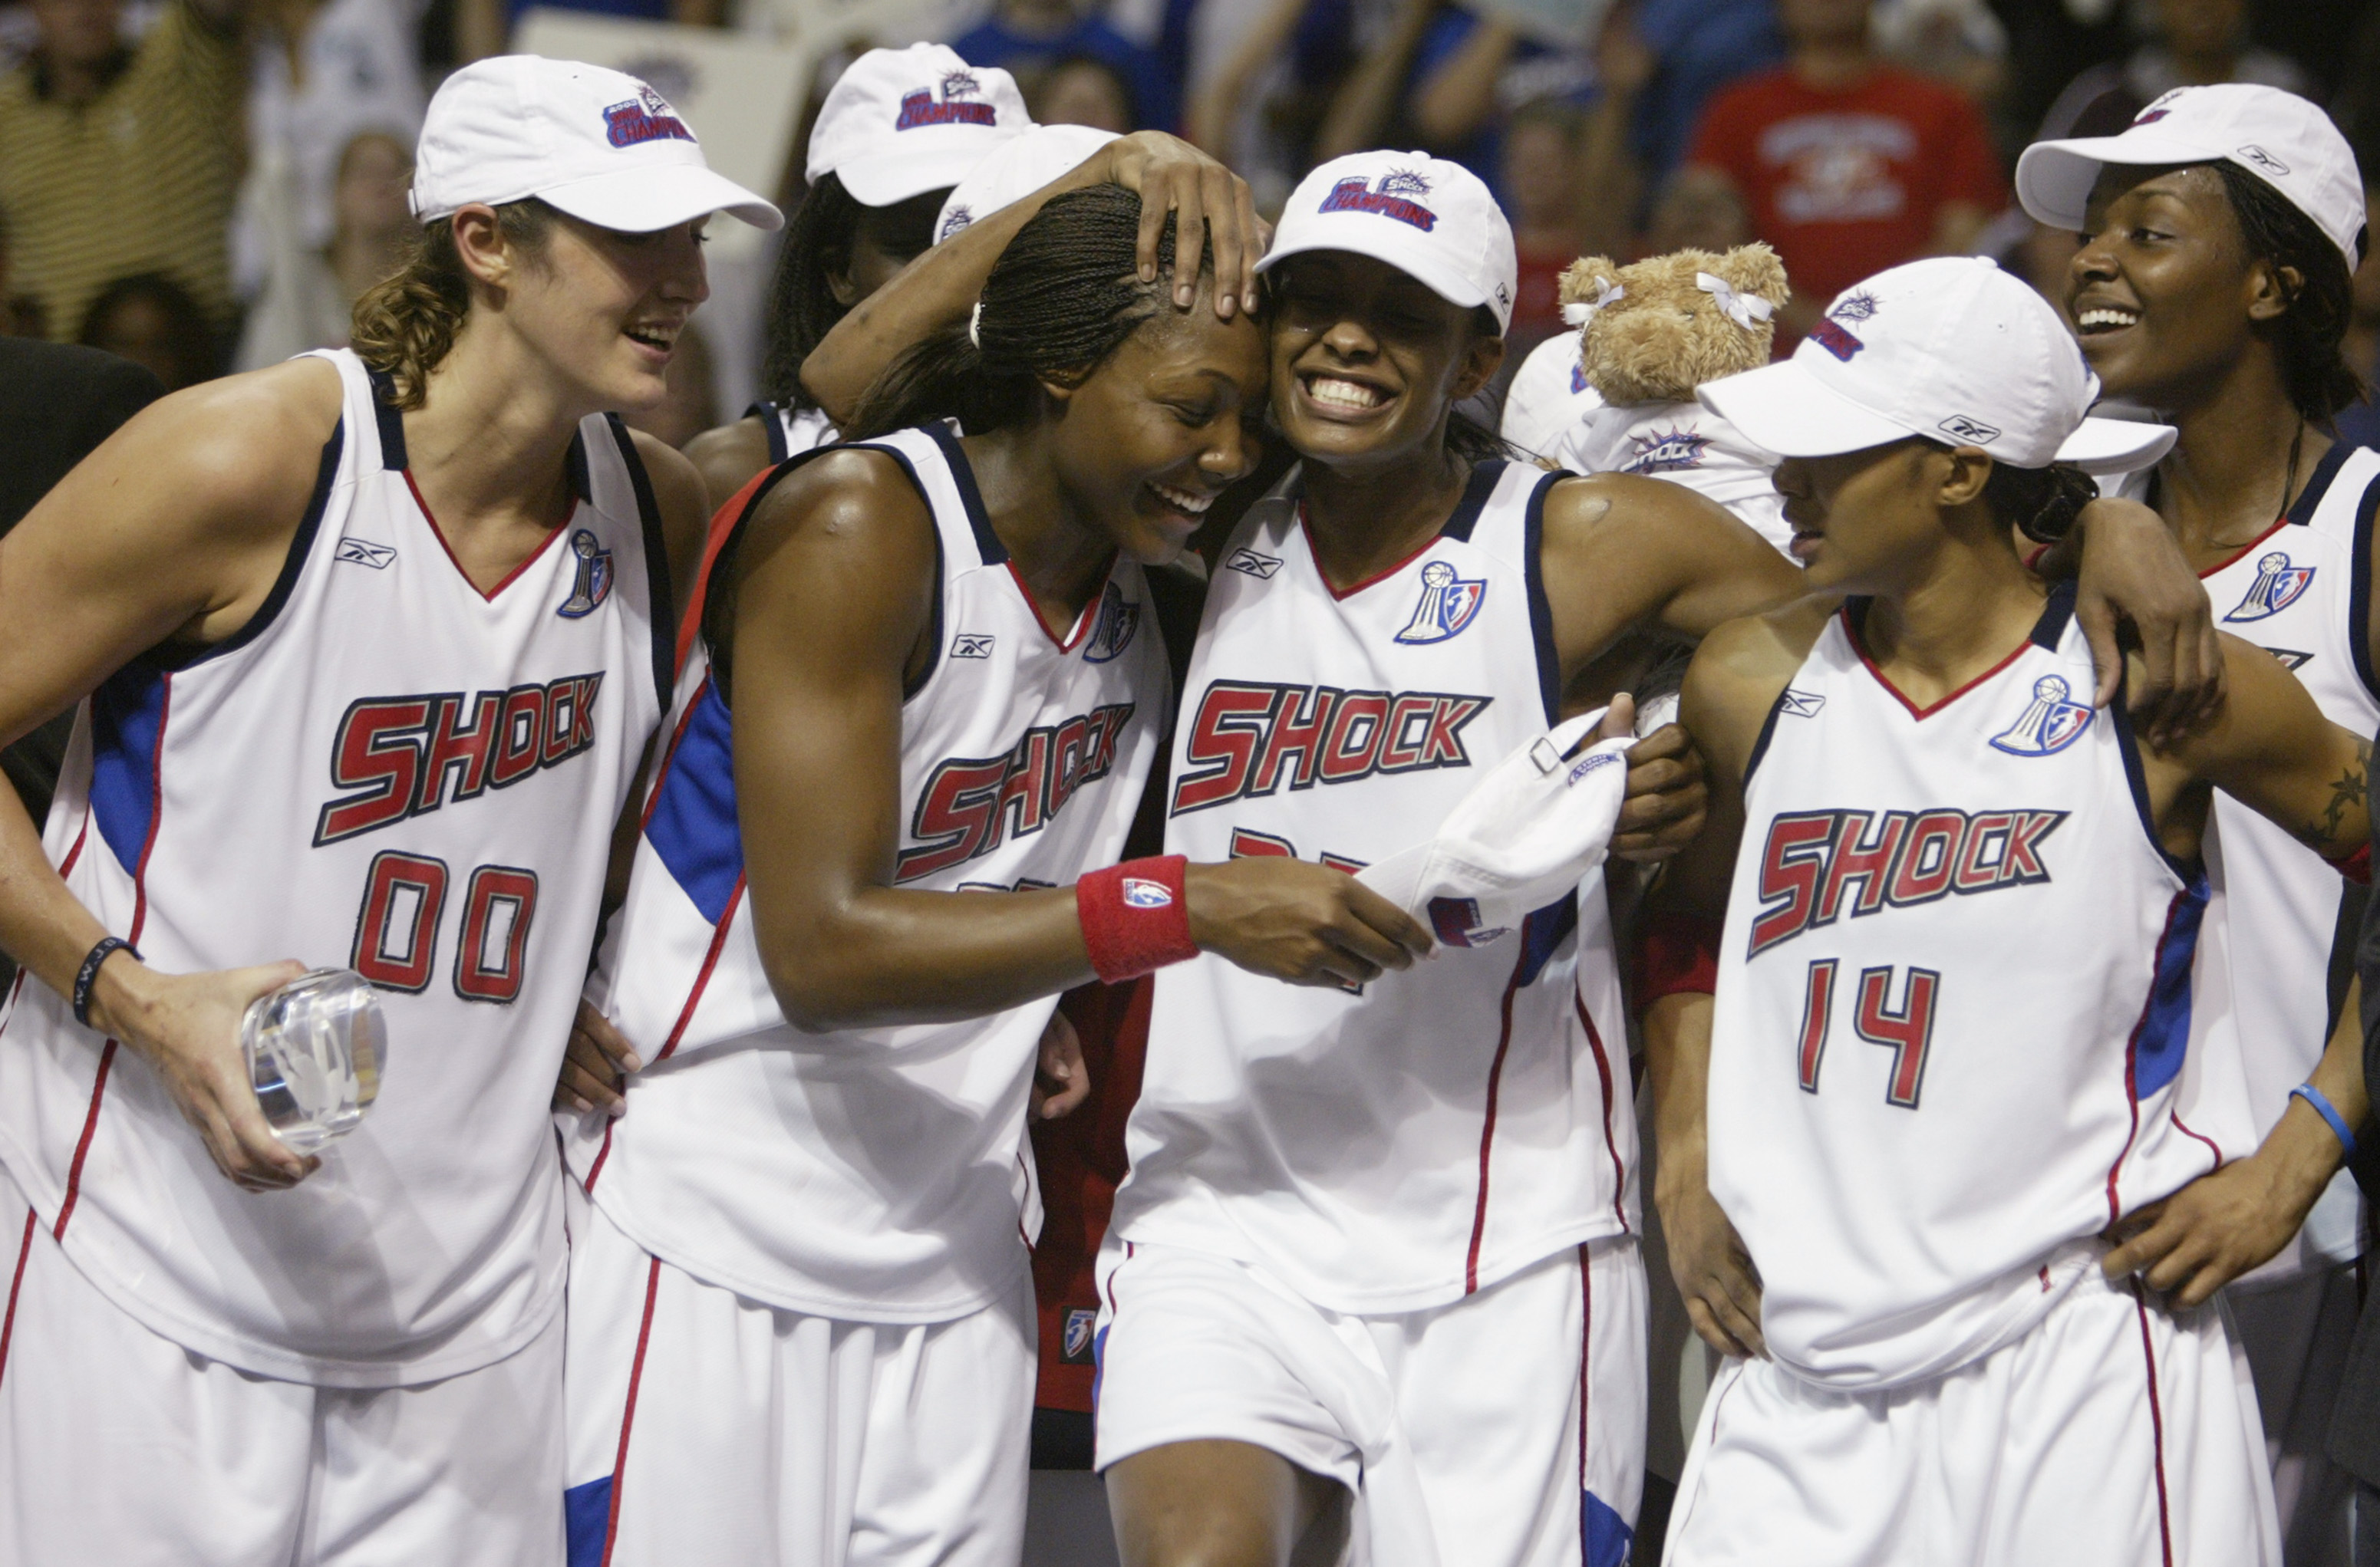 AUBURN HILLS, MI - SEPTEMBER 16:  (L to R) Ruth Riley #00, Cheryl Ford #35, Swin Cash #32, Deanna Nolan #14 and Barbara Ferris #54 of the Detroit Shock celebrate on the podium after defeating the two-time champion Los Angeles Sparks in Game three of the 2